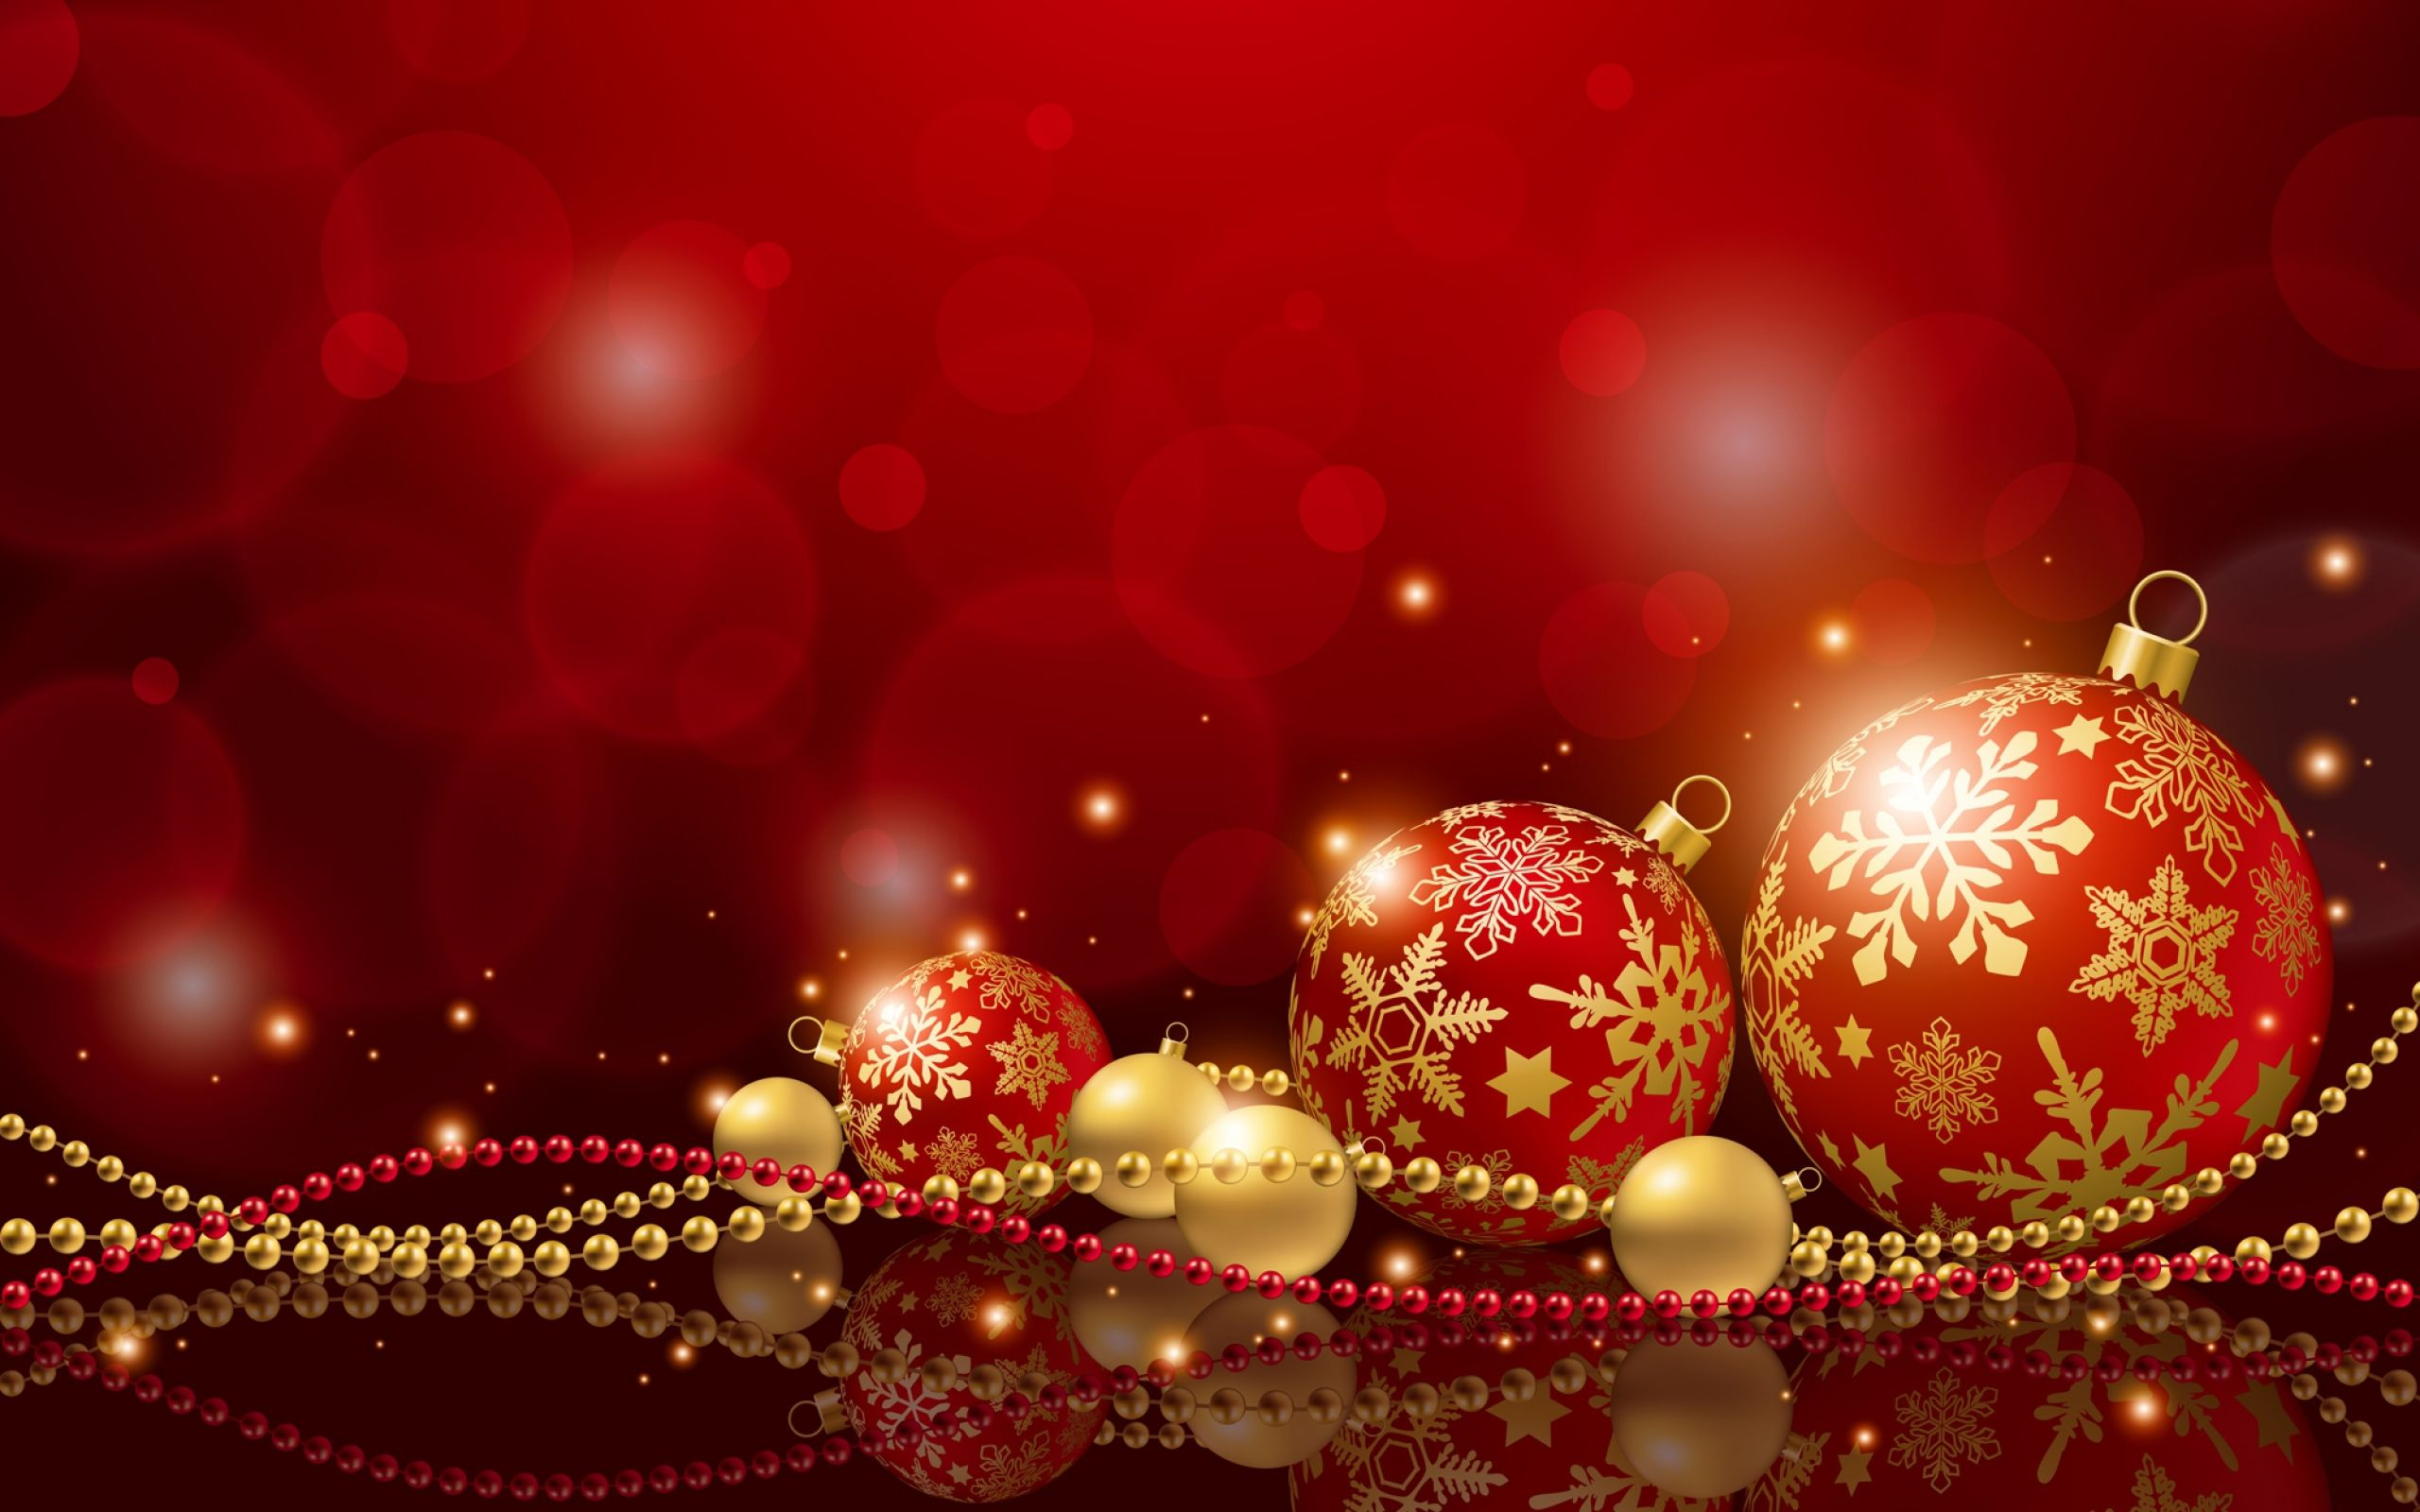 holiday background - Google Search   Holidays!   Pinterest ...